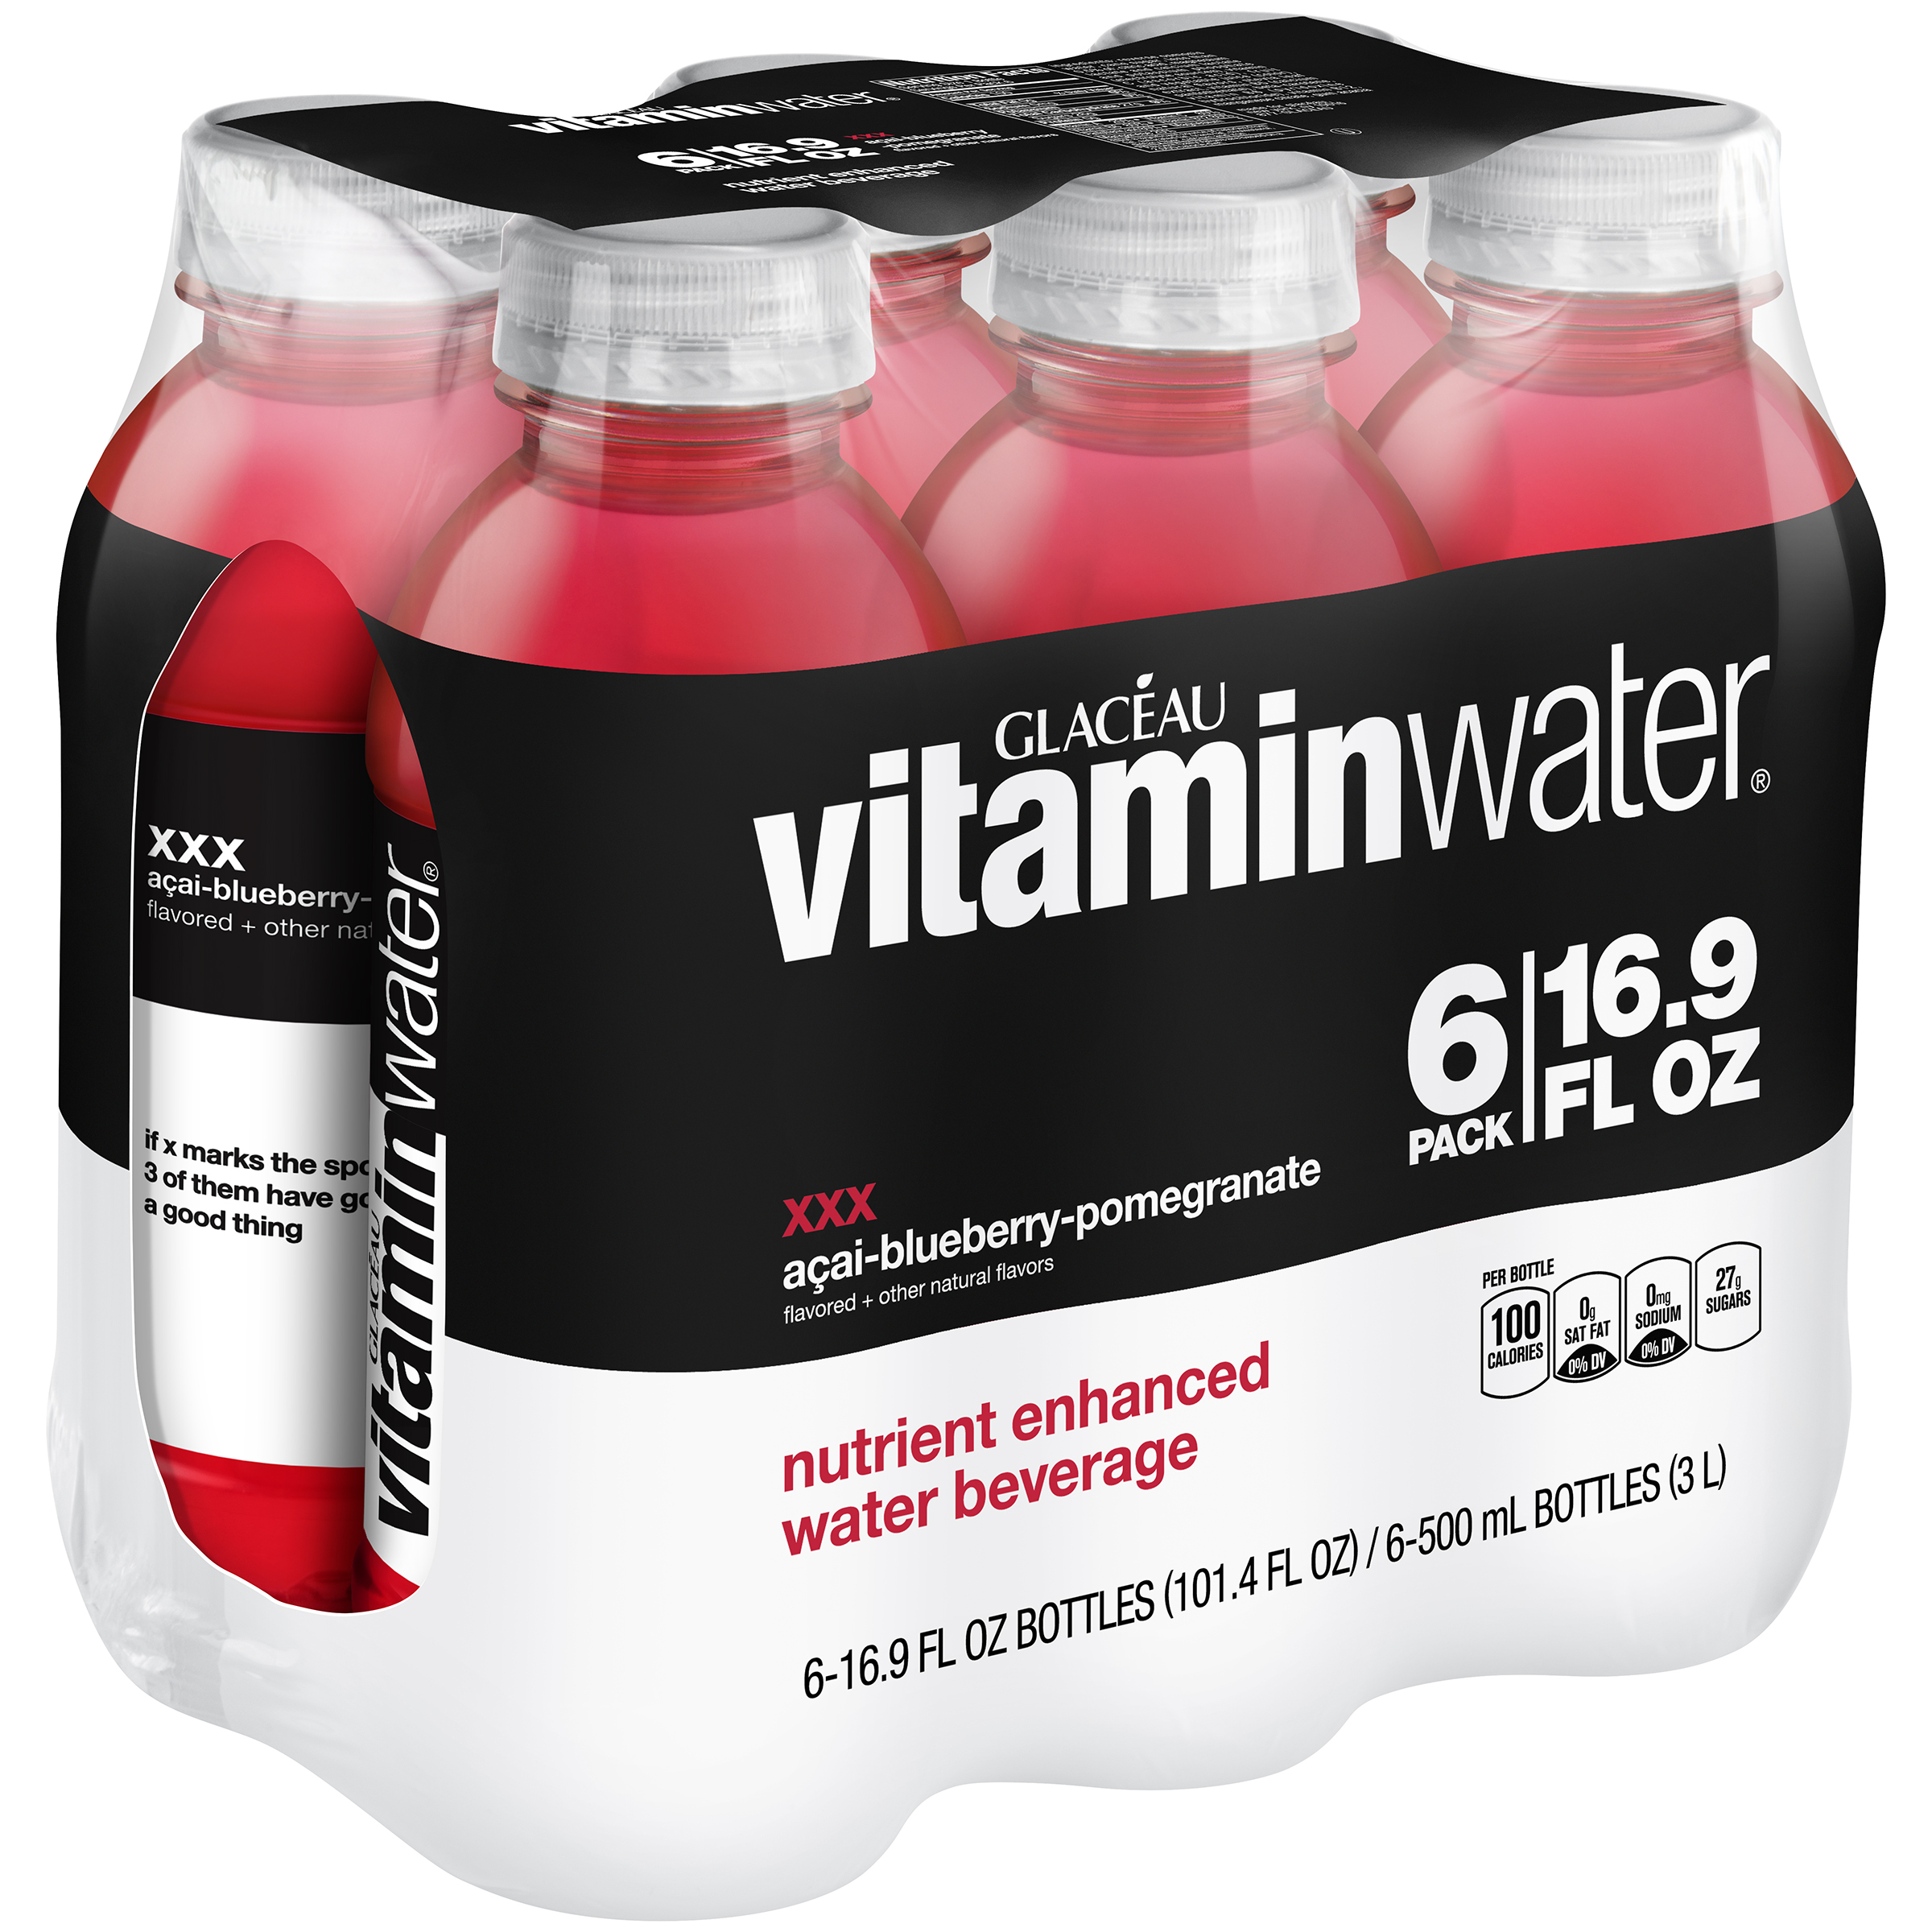 vitaminwater XXX, Acai-Blueberry-Pomegranate 16.9 fl oz, 6 Pack